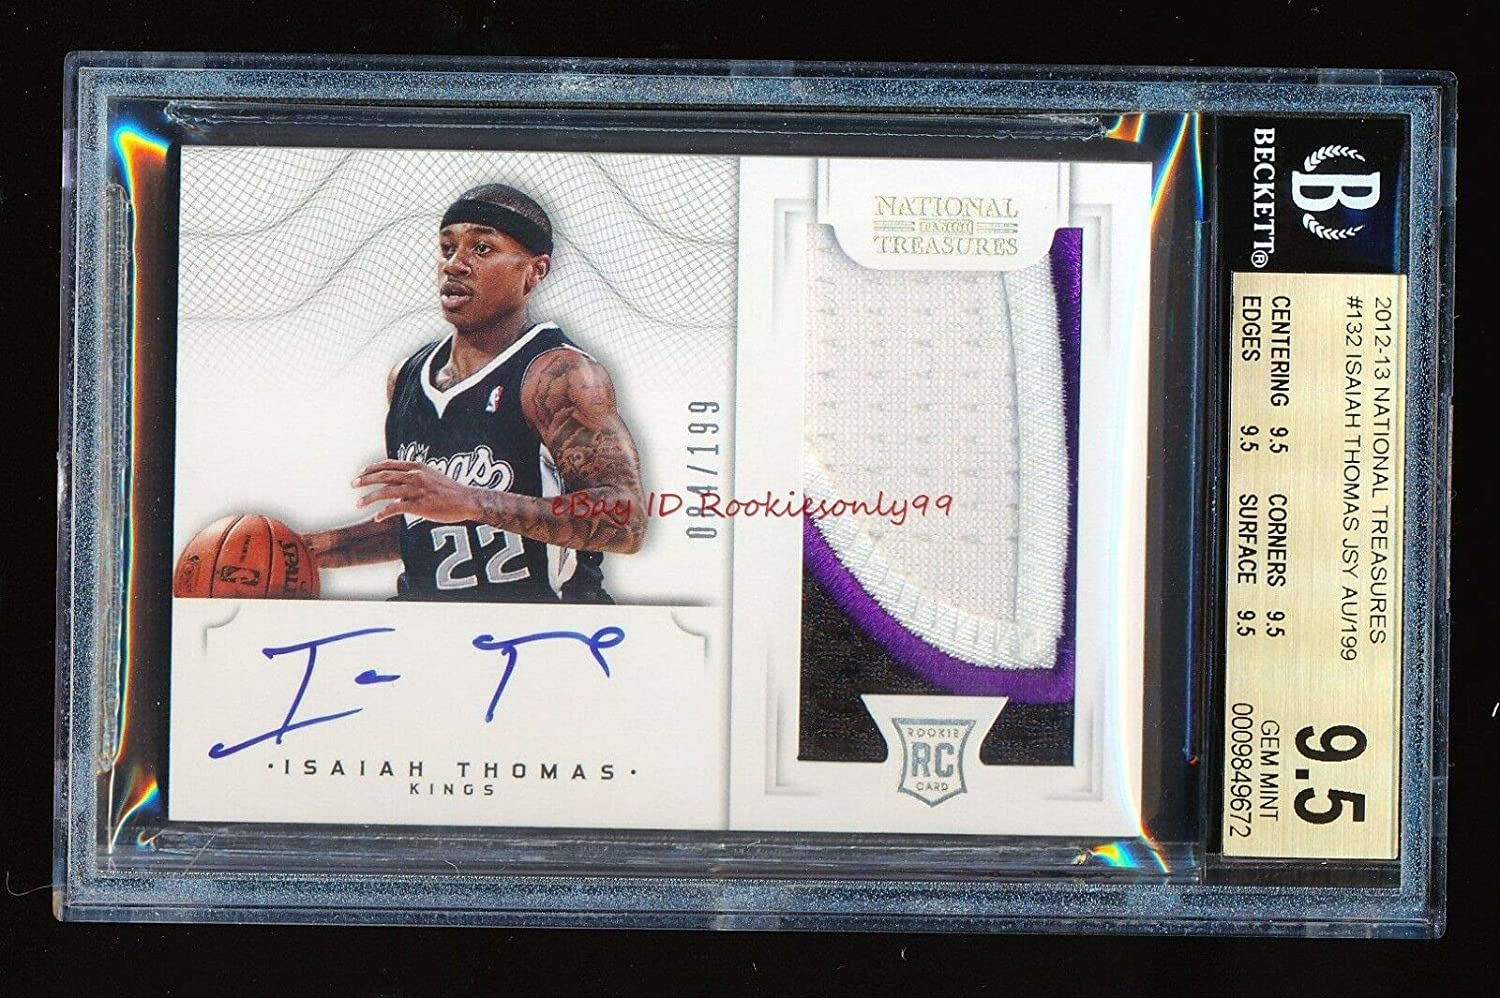 BGS 9.5 ISAIAH THOMAS Washington Mall 2012 NATIONAL RC 19 # PATCH Super Special SALE held AUTO TREASURES